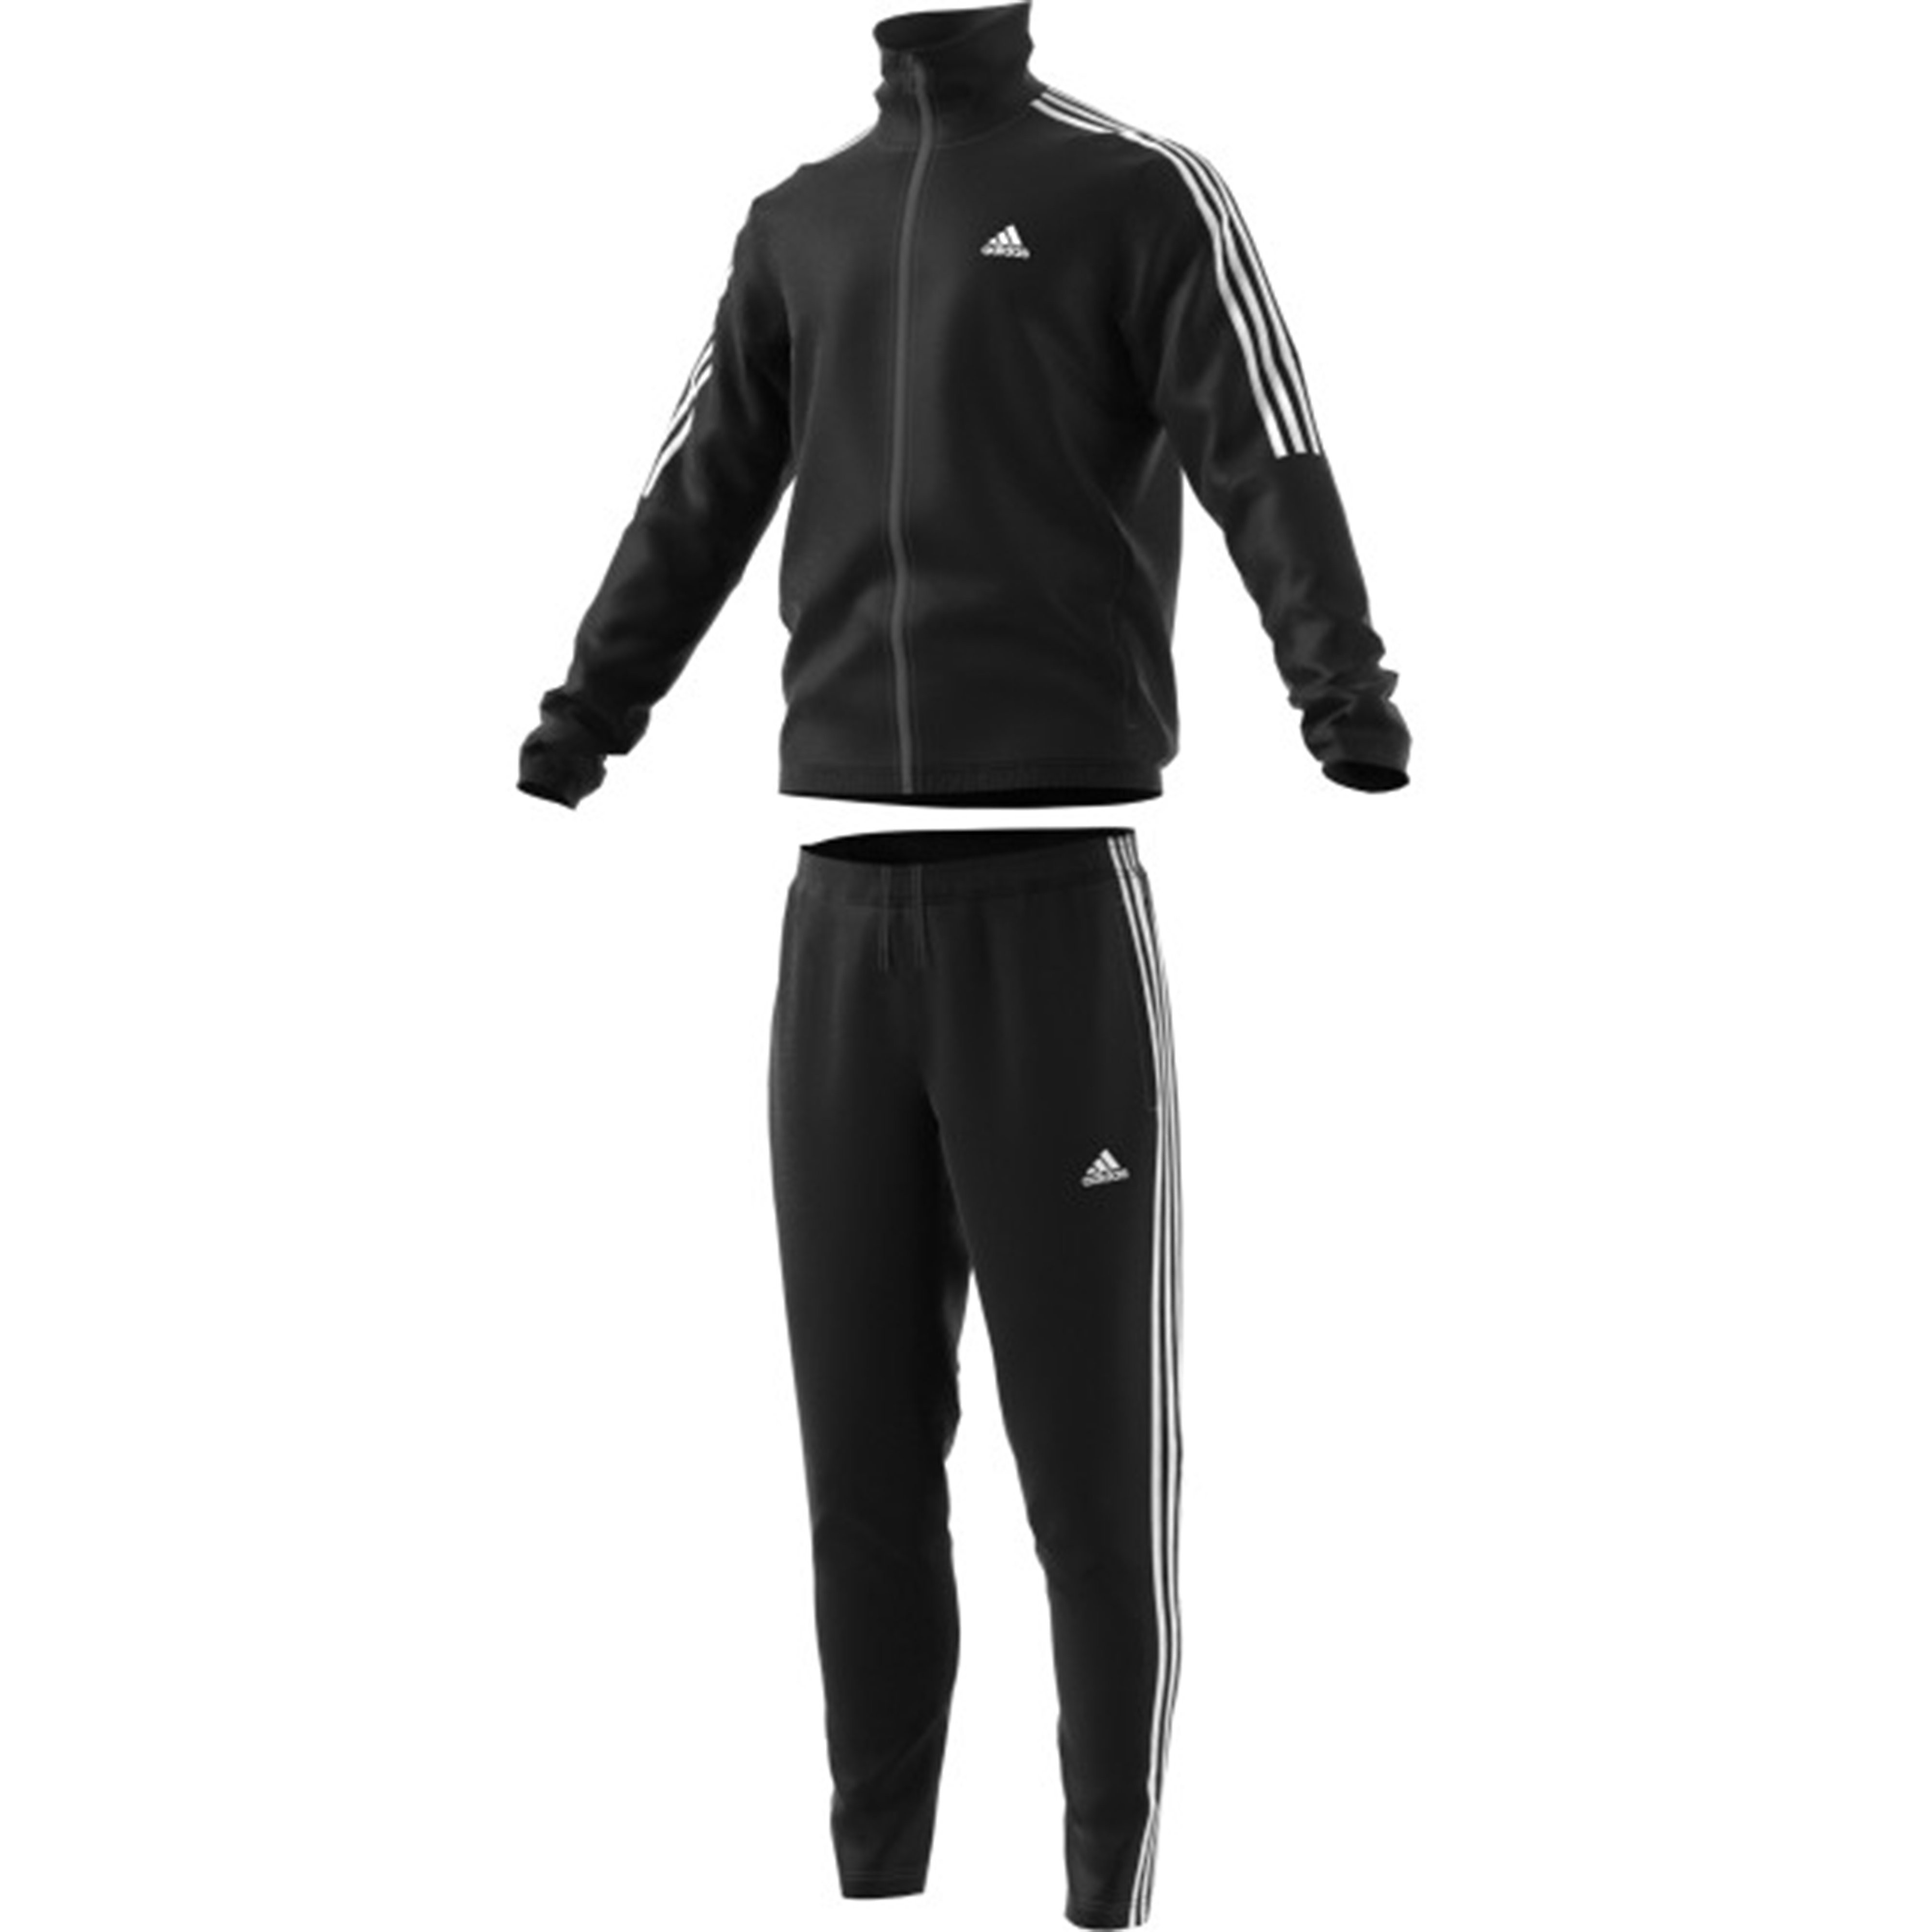 ADIDAS TIRO TRAININGSPAK ZWART HEREN